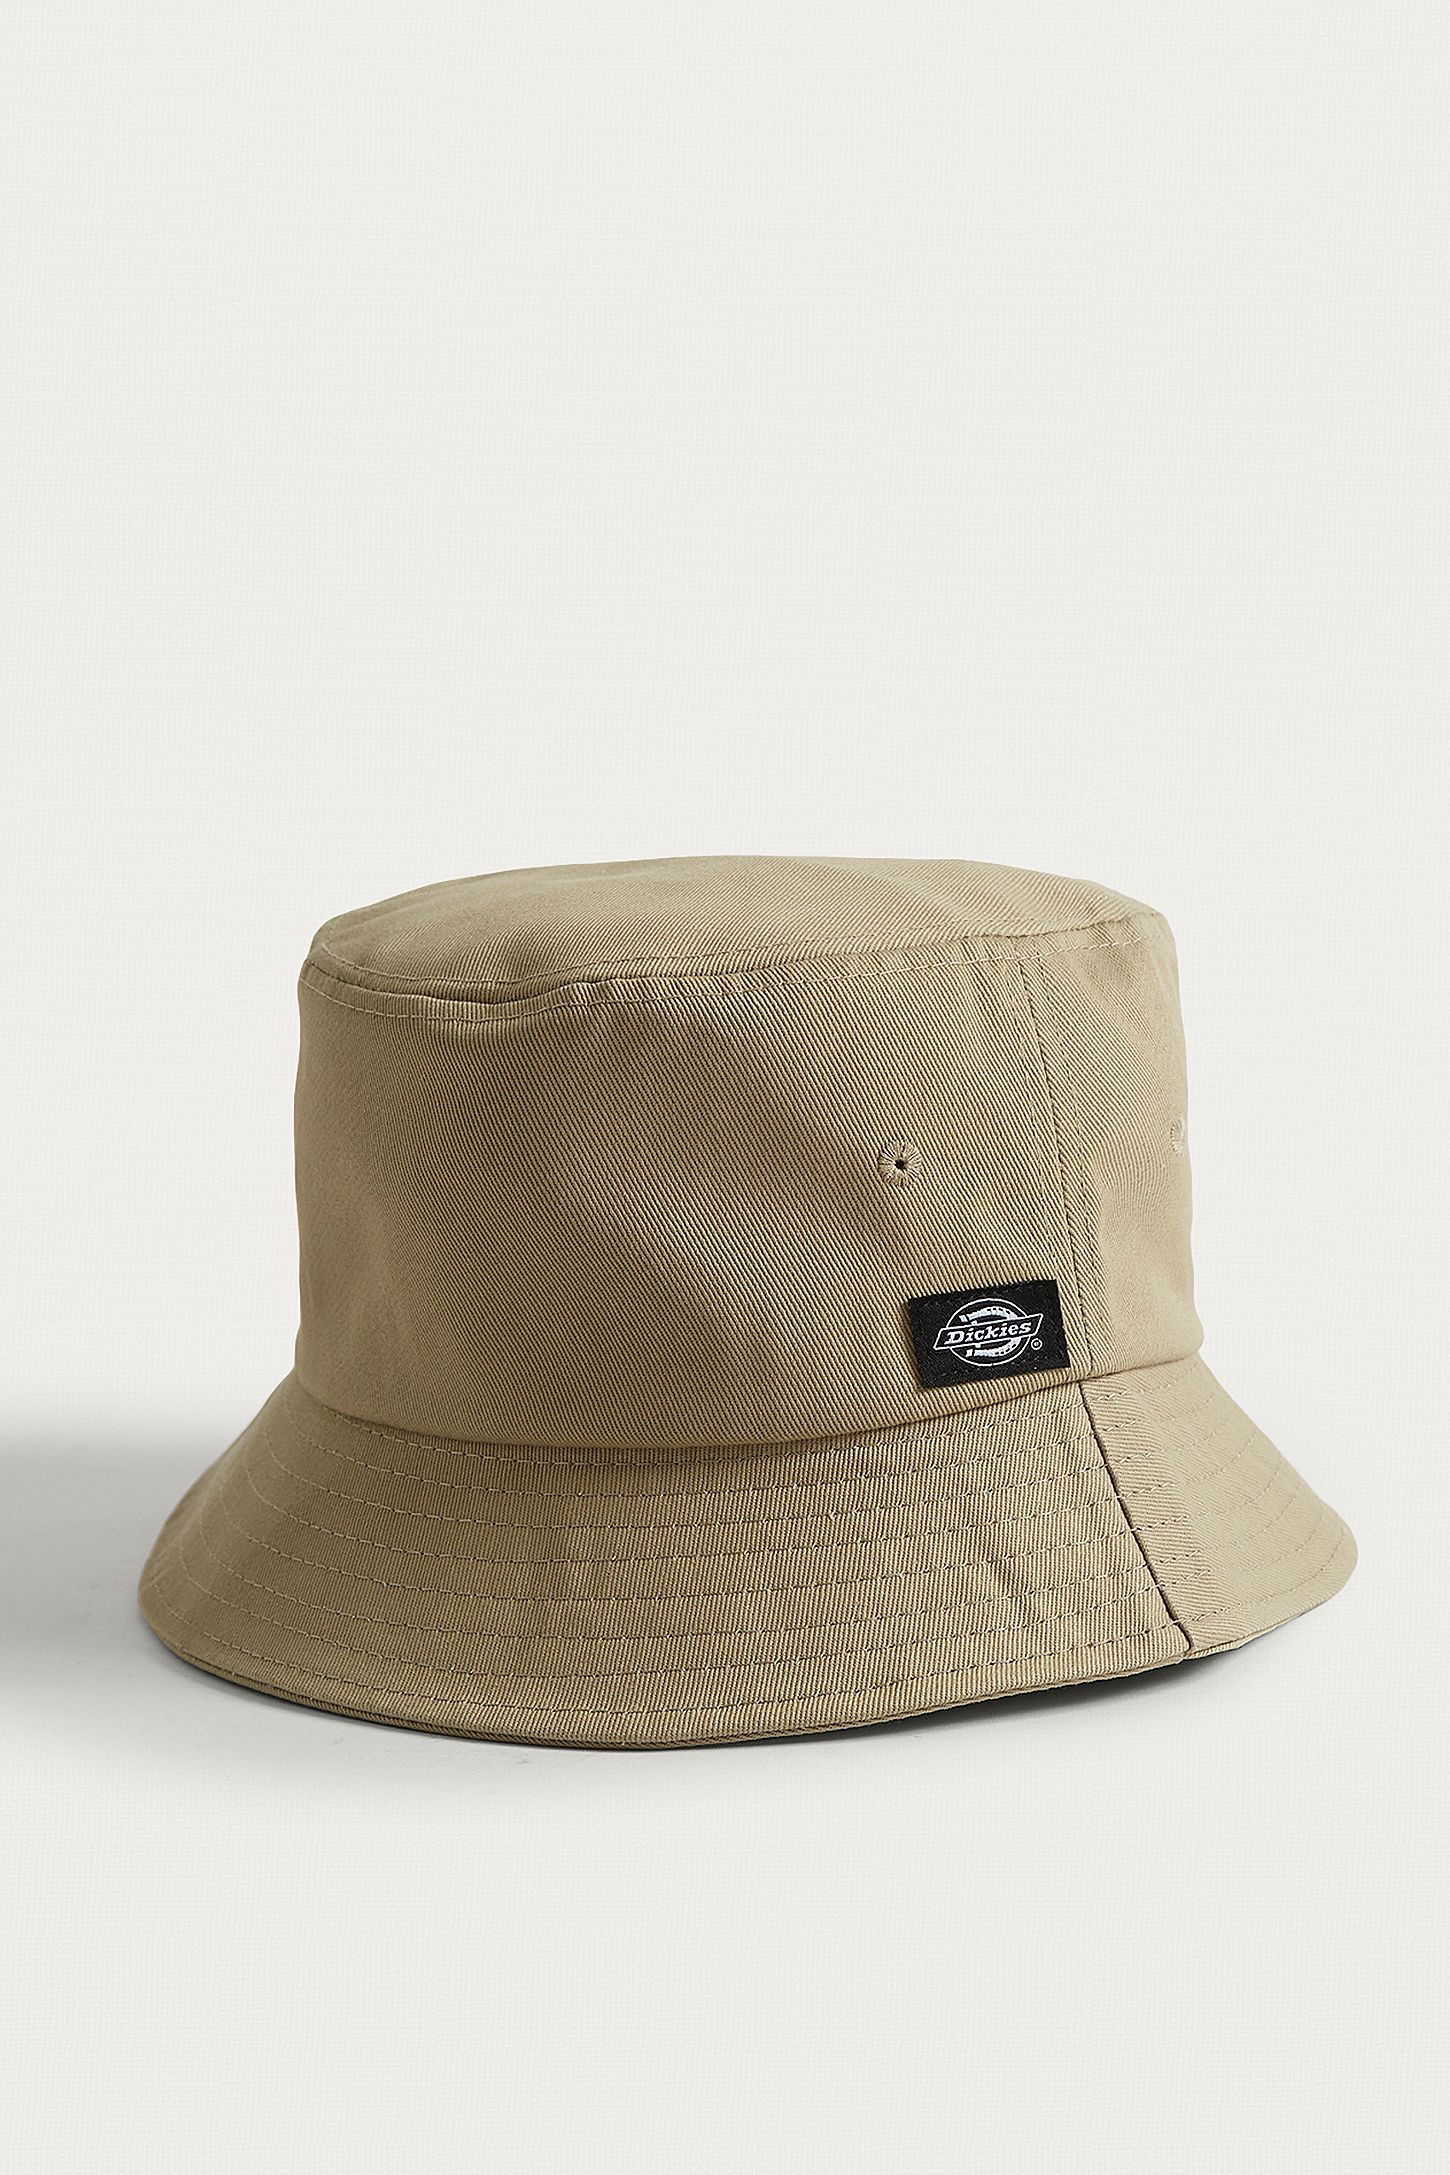 Dickies Addison Khaki Bucket Hat  b44e9841134